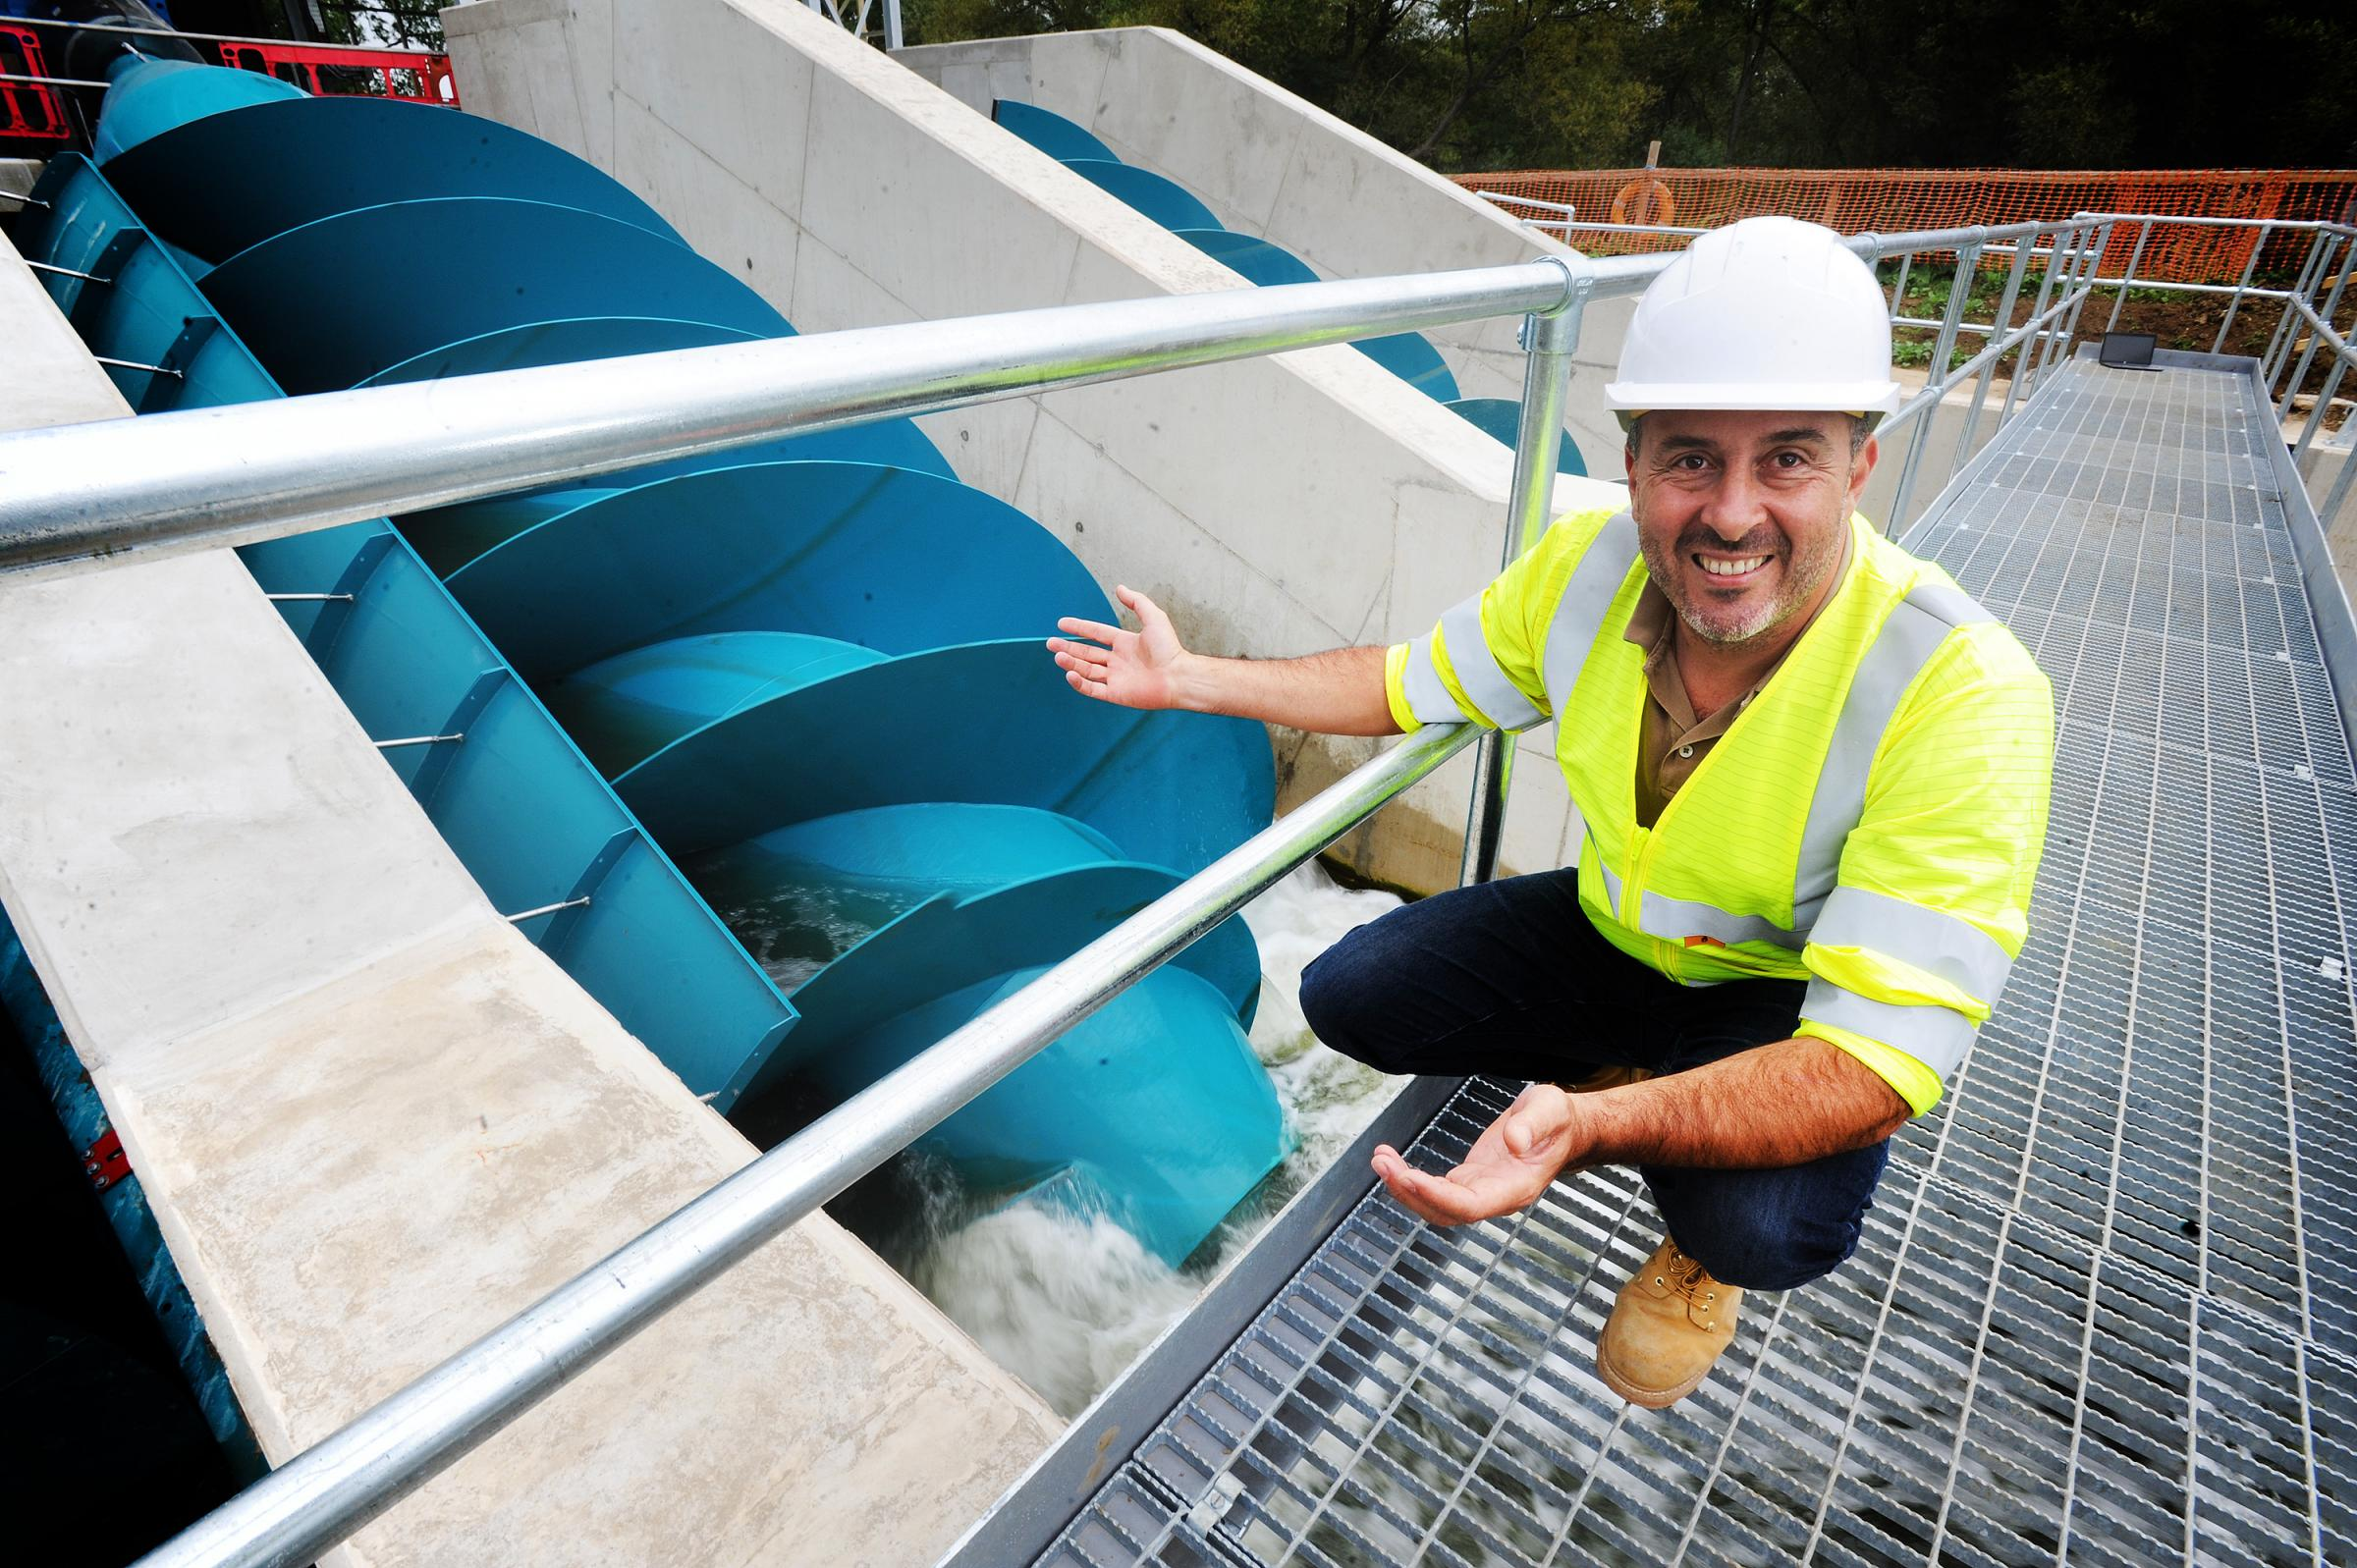 Sandford Hydro operations director Adriano Figueiredo at the plant in August 2017. Picture: Jon Lewis